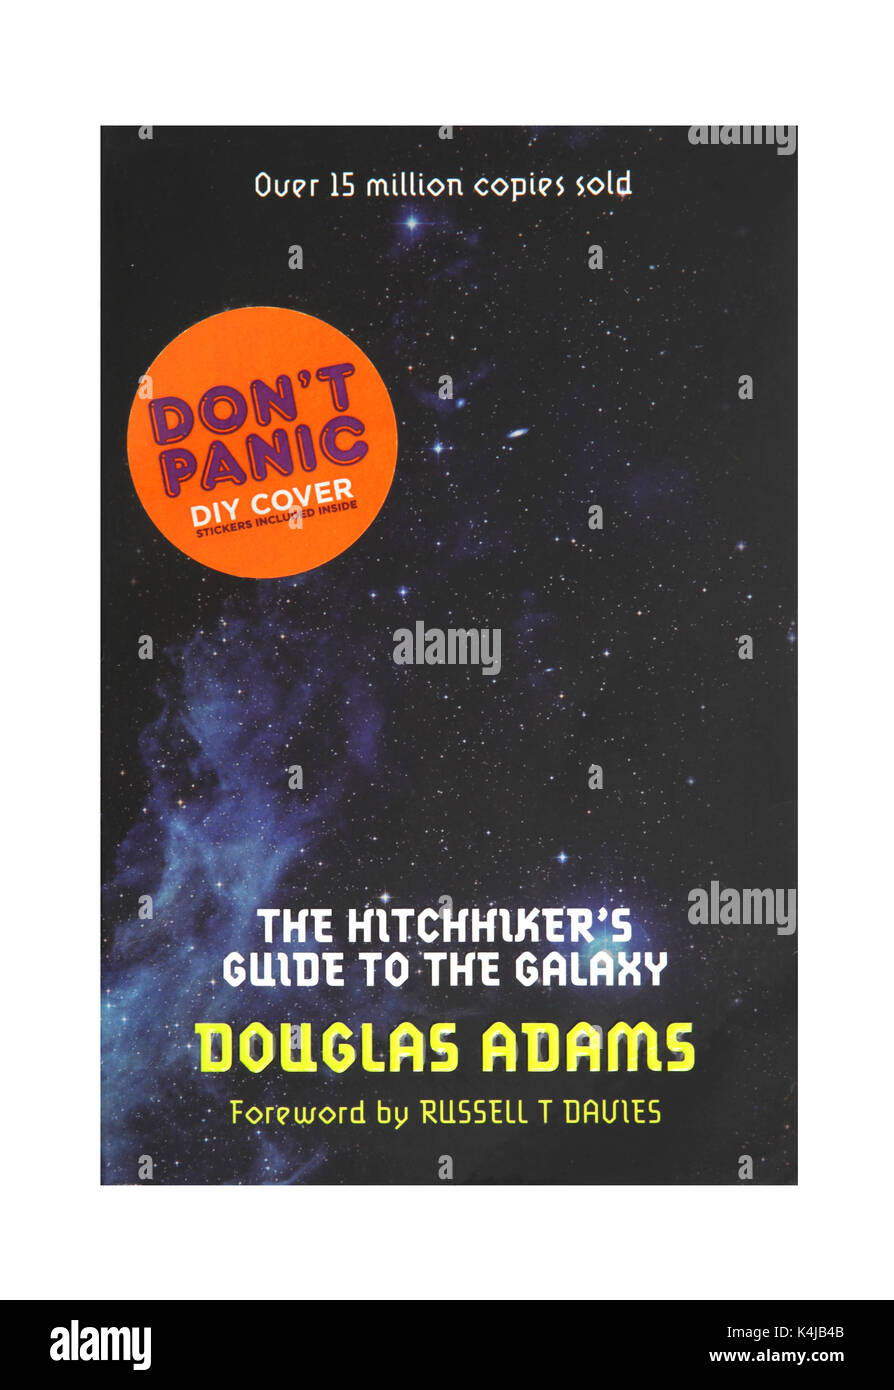 The book The Hitchhikers Guide to the Galaxy by Douglas Adams. - Stock Image